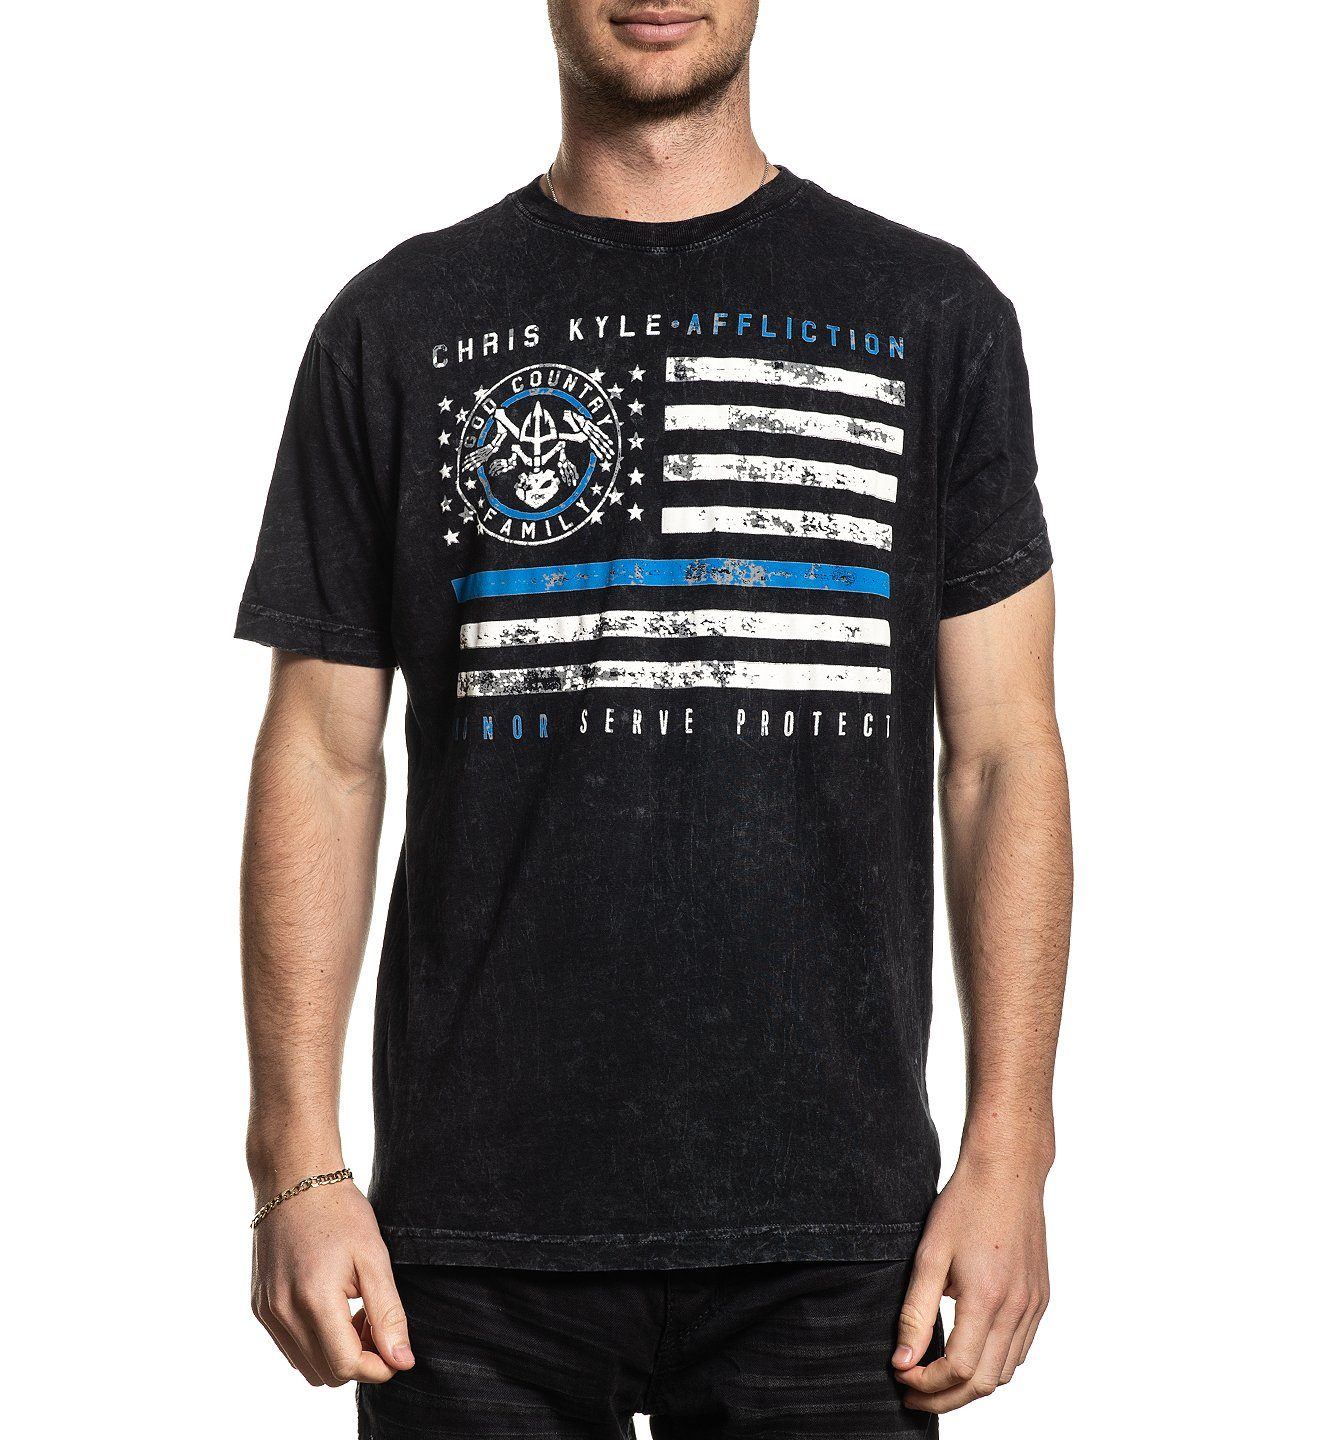 Ck Honor Protect - Mens Short Sleeve Tees - Affliction Clothing